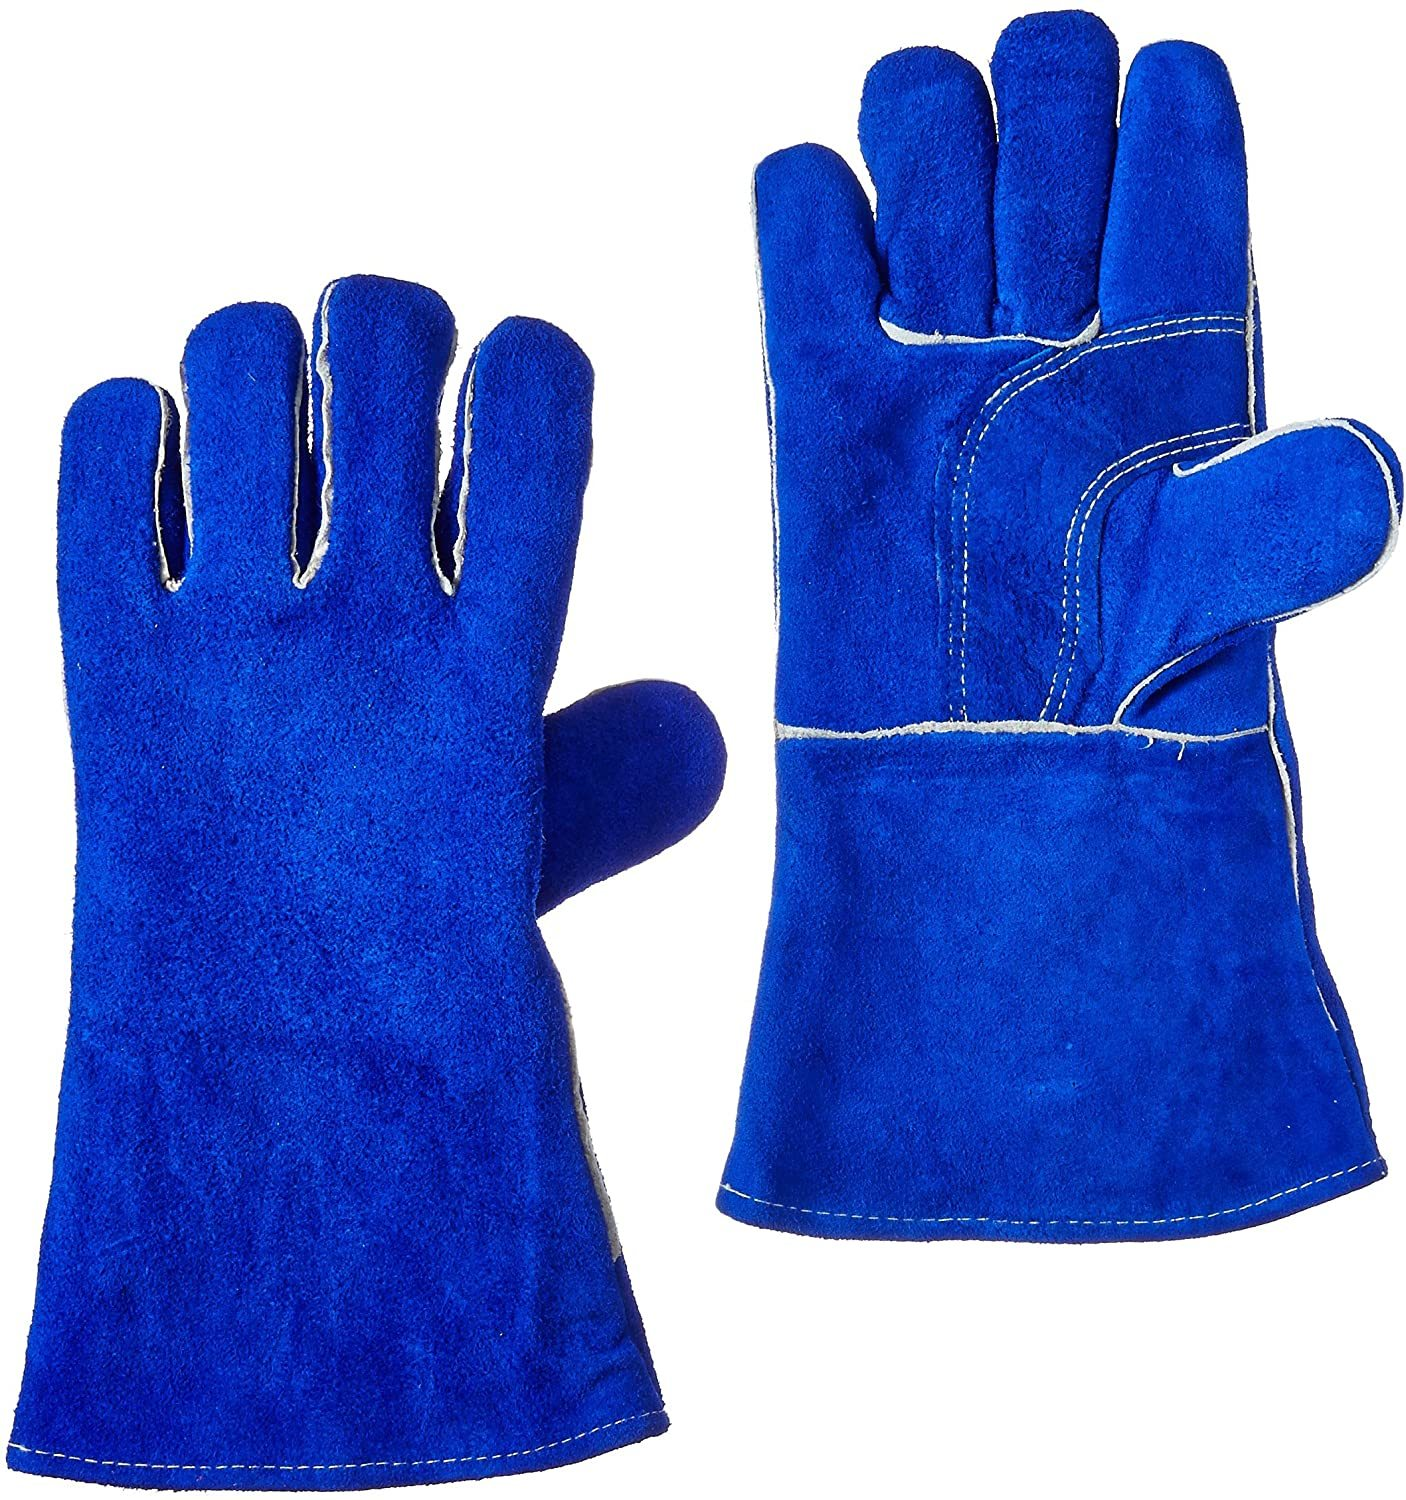 US Forge 400 Welding Gloves Lined Leather